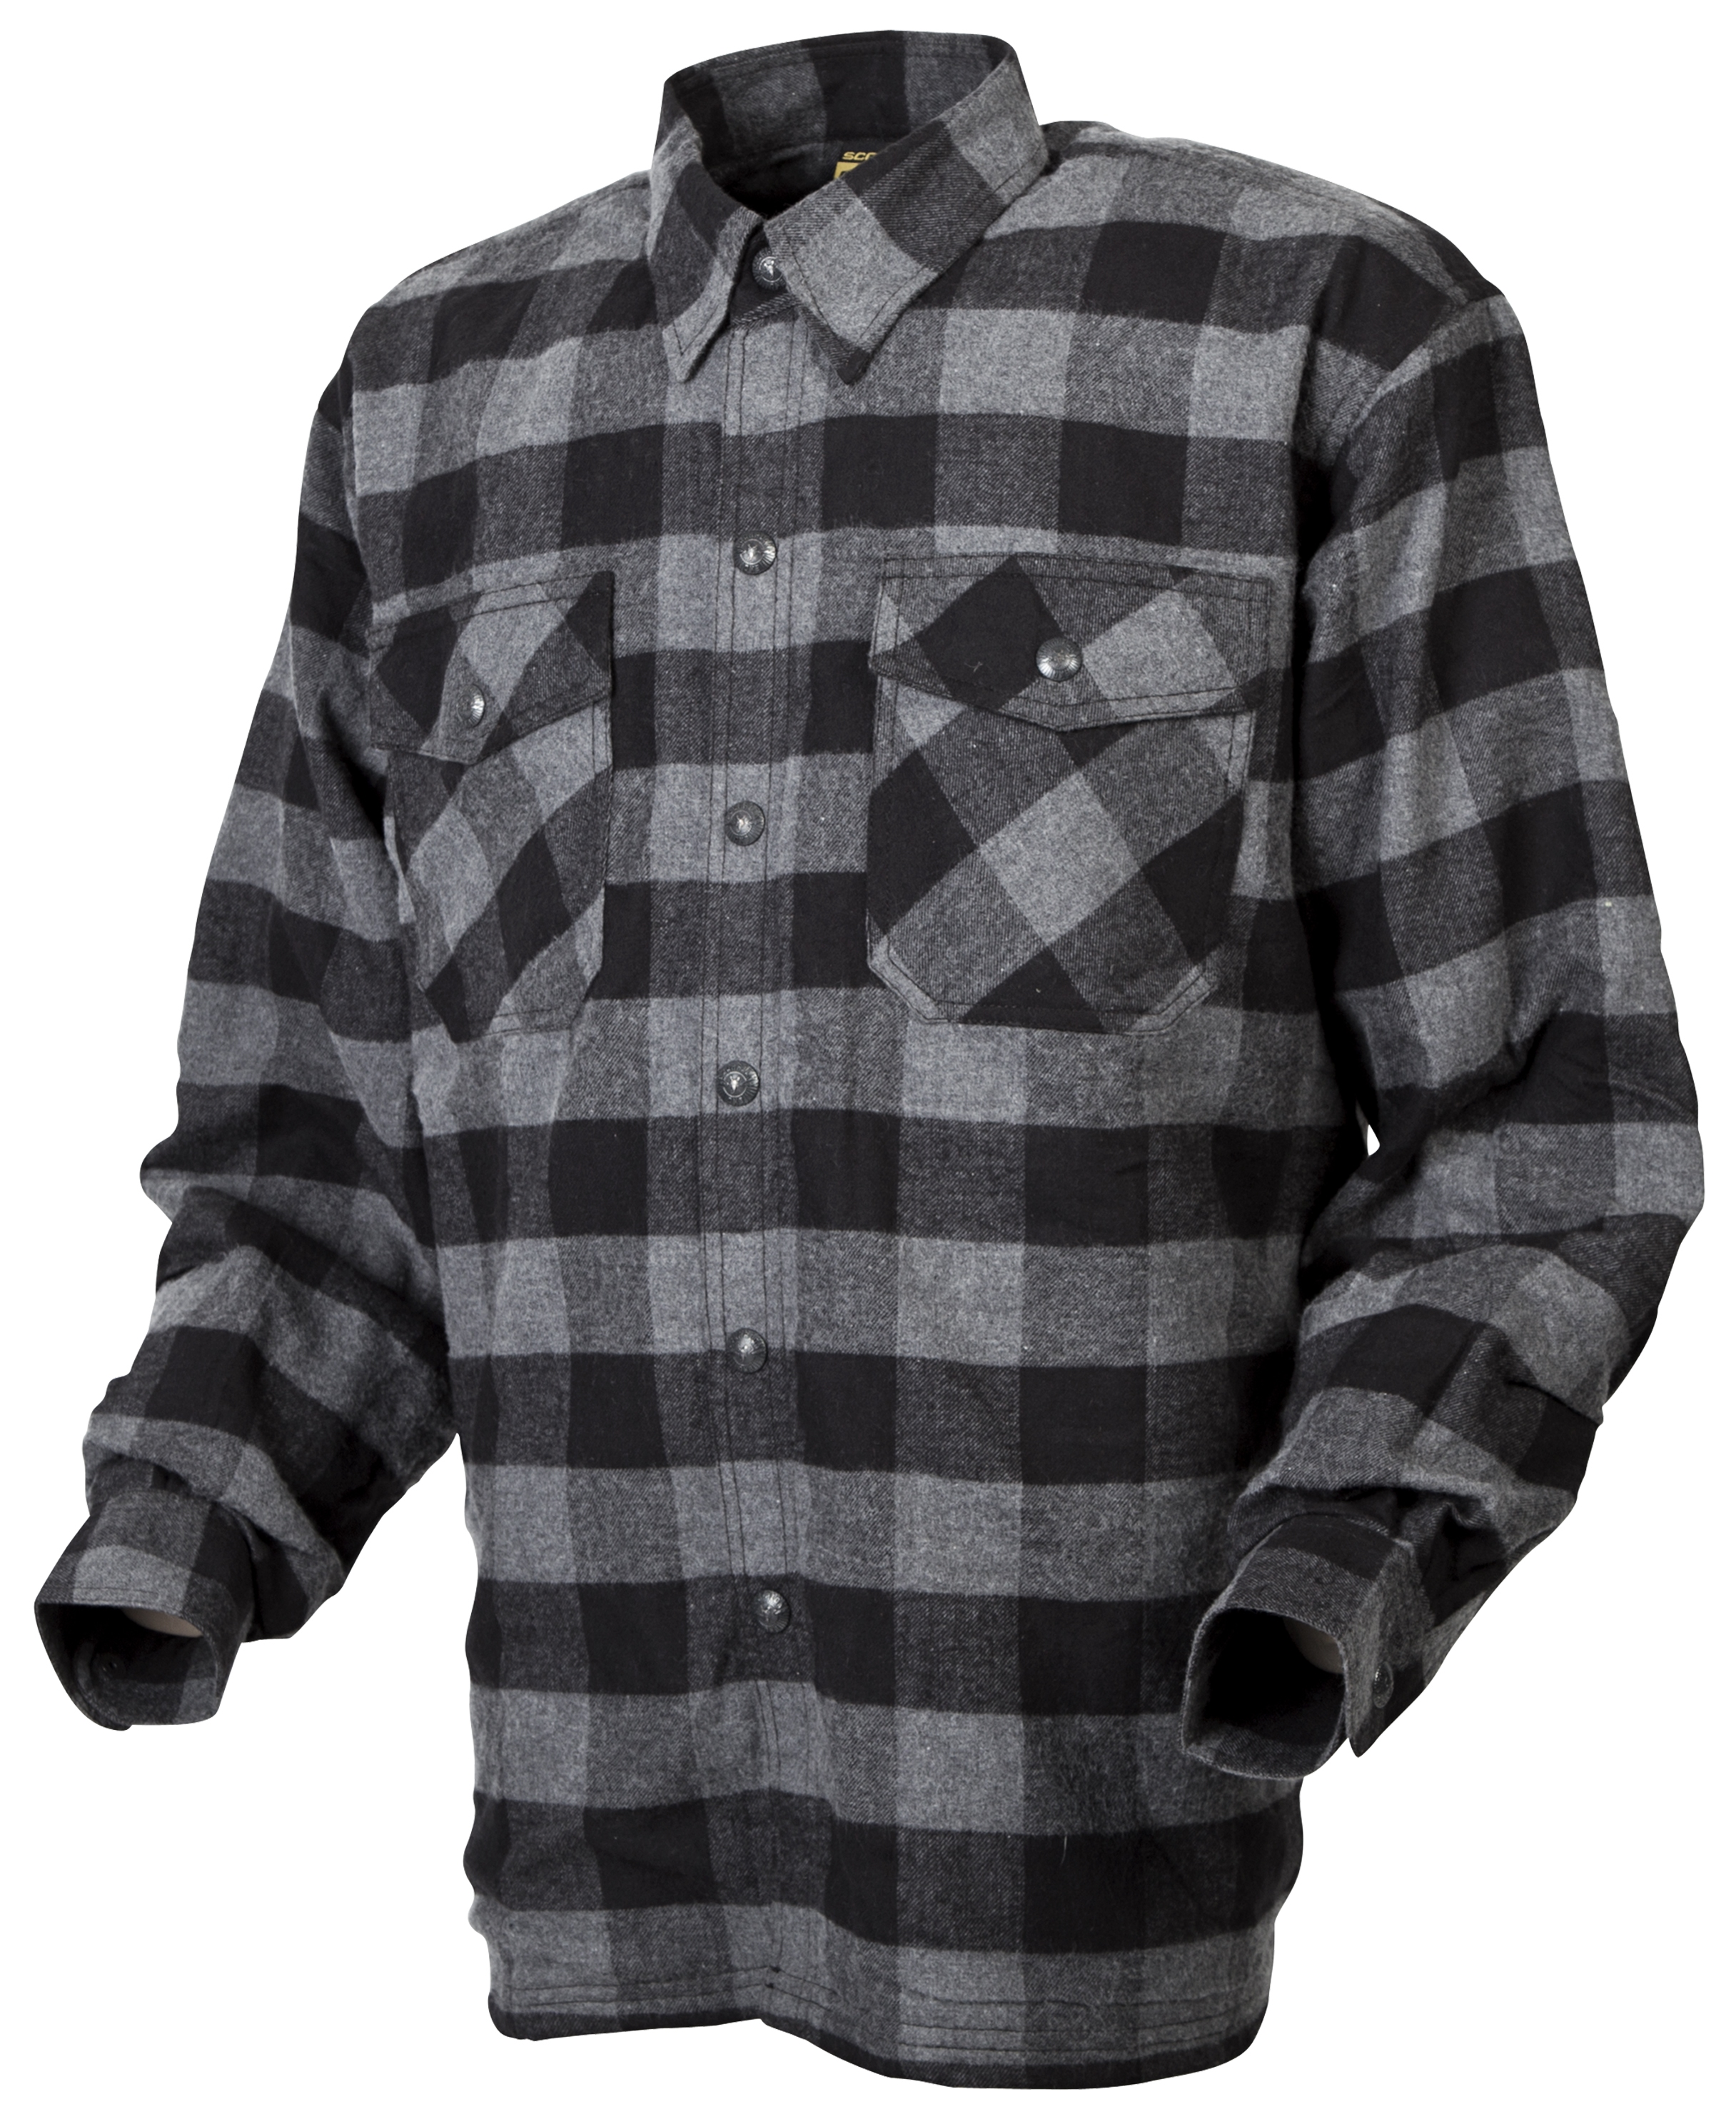 Flannel Motorcycle Jacket >> Scorpion Covert Flannel Shirt Revzilla